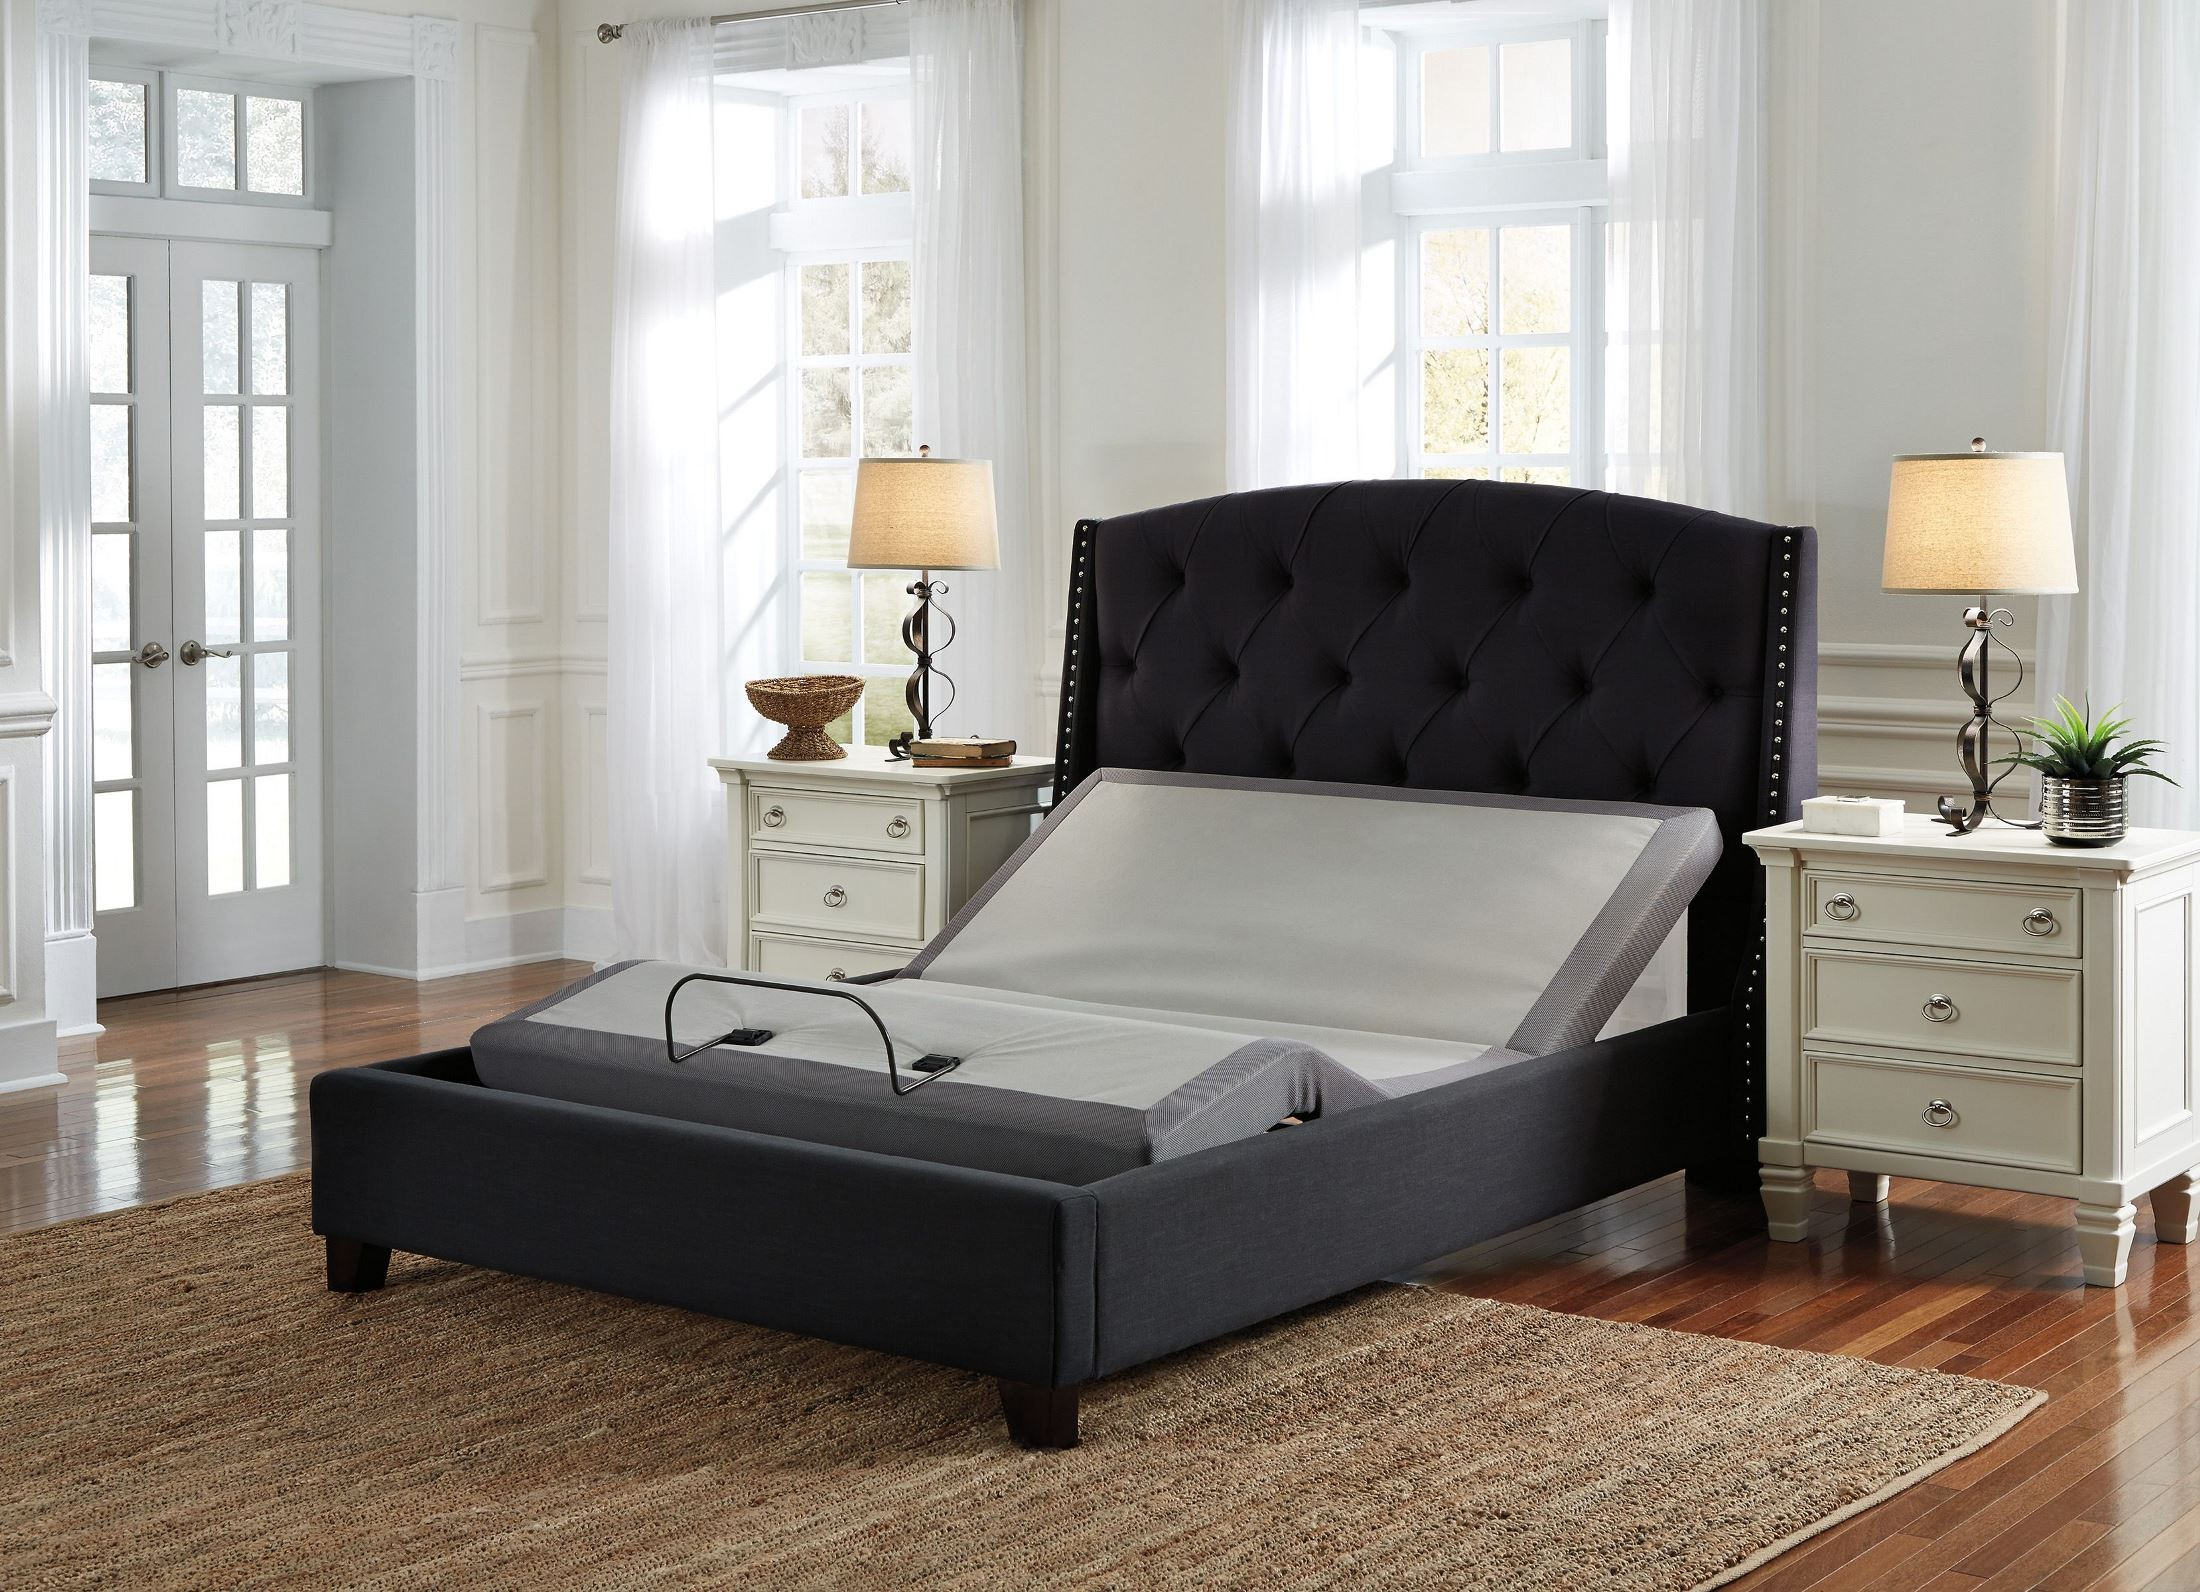 Zero Gravity King Adjustable Bed From Ashley Coleman